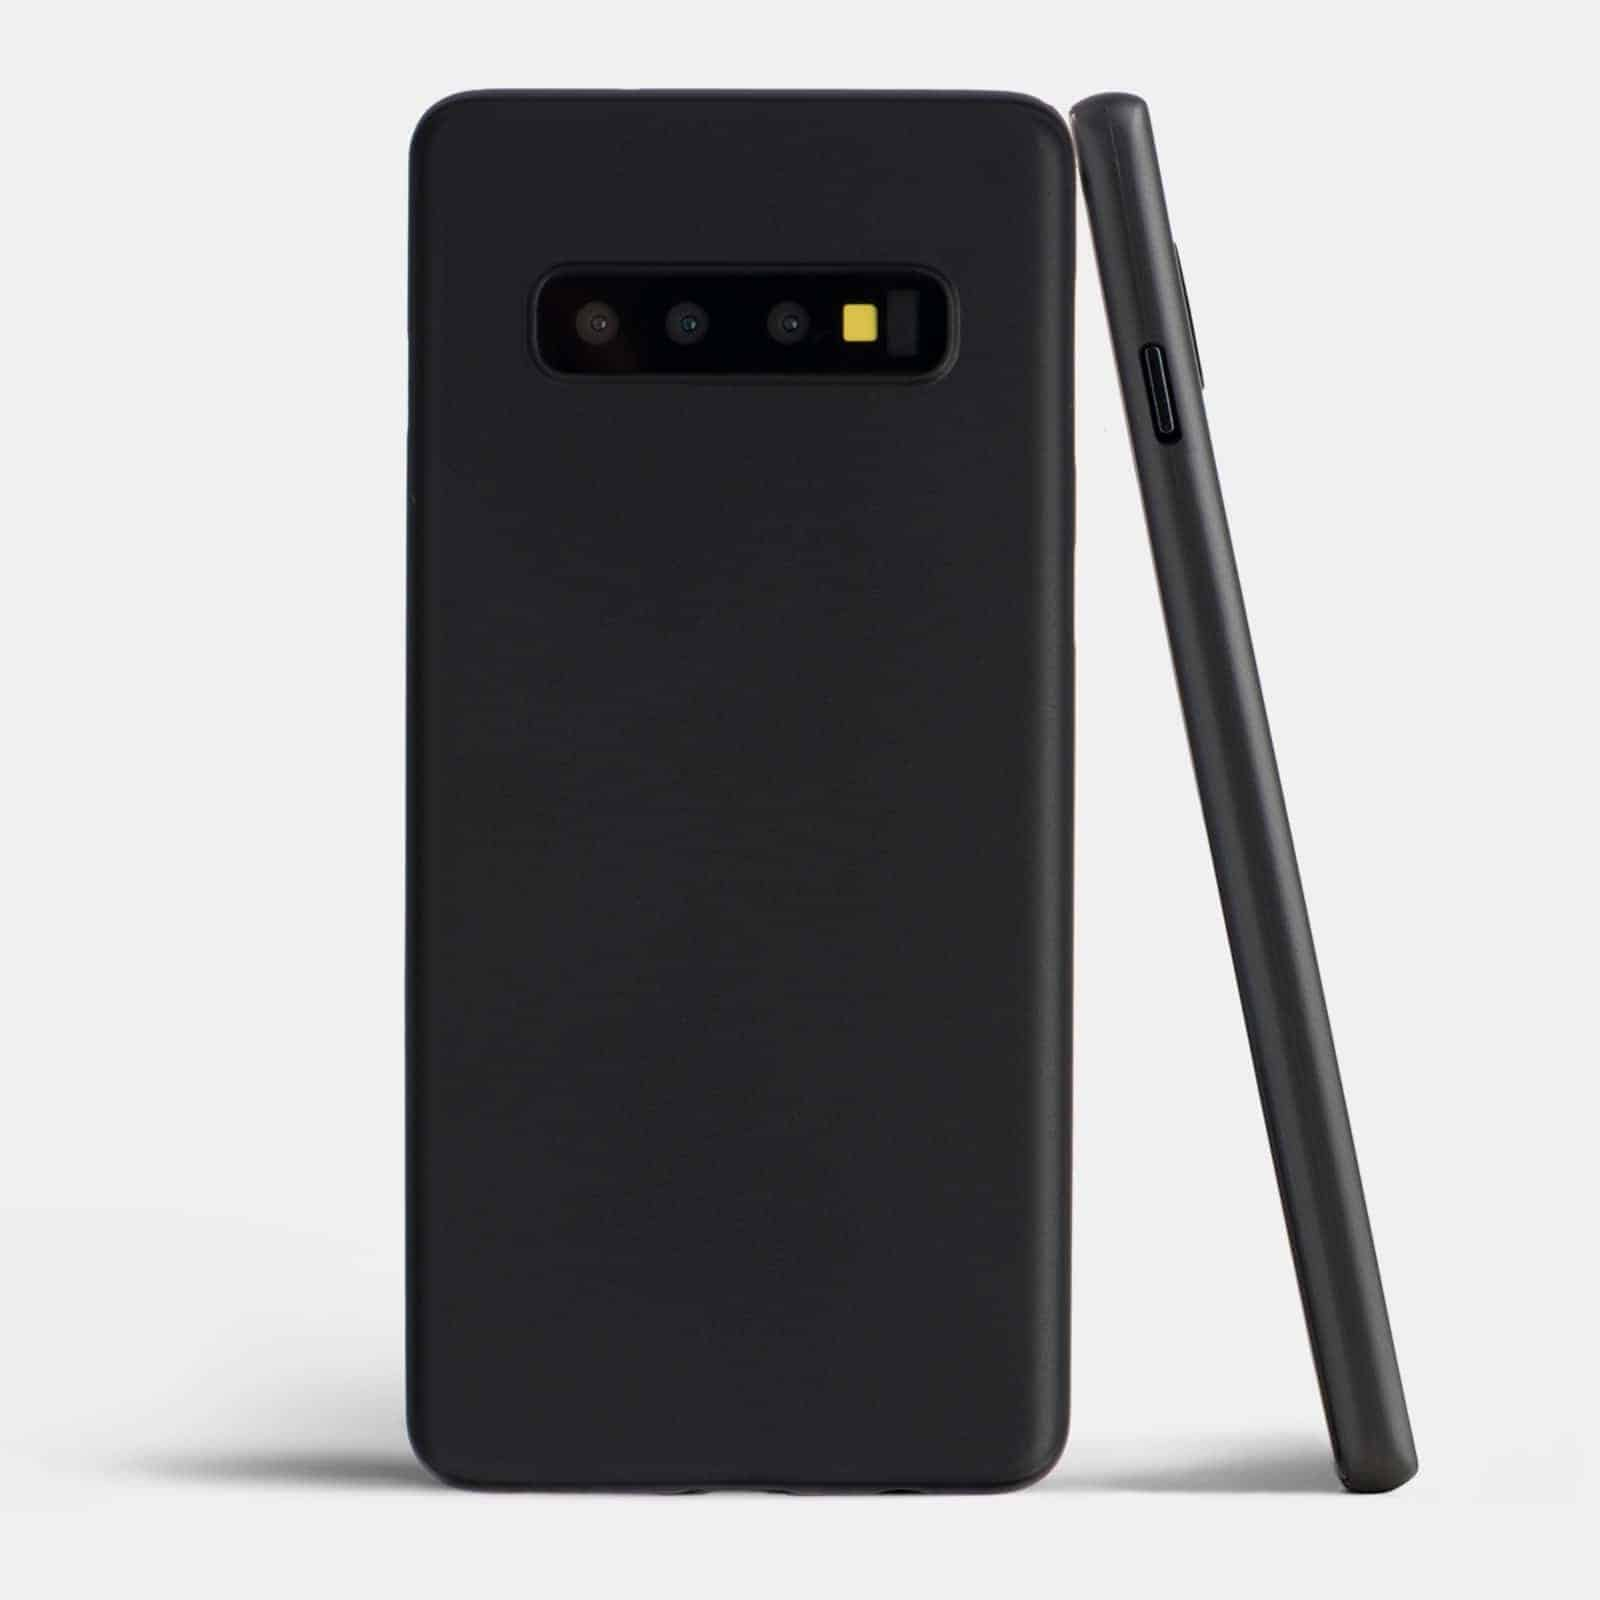 S10 Solid Black Main totallee case press img